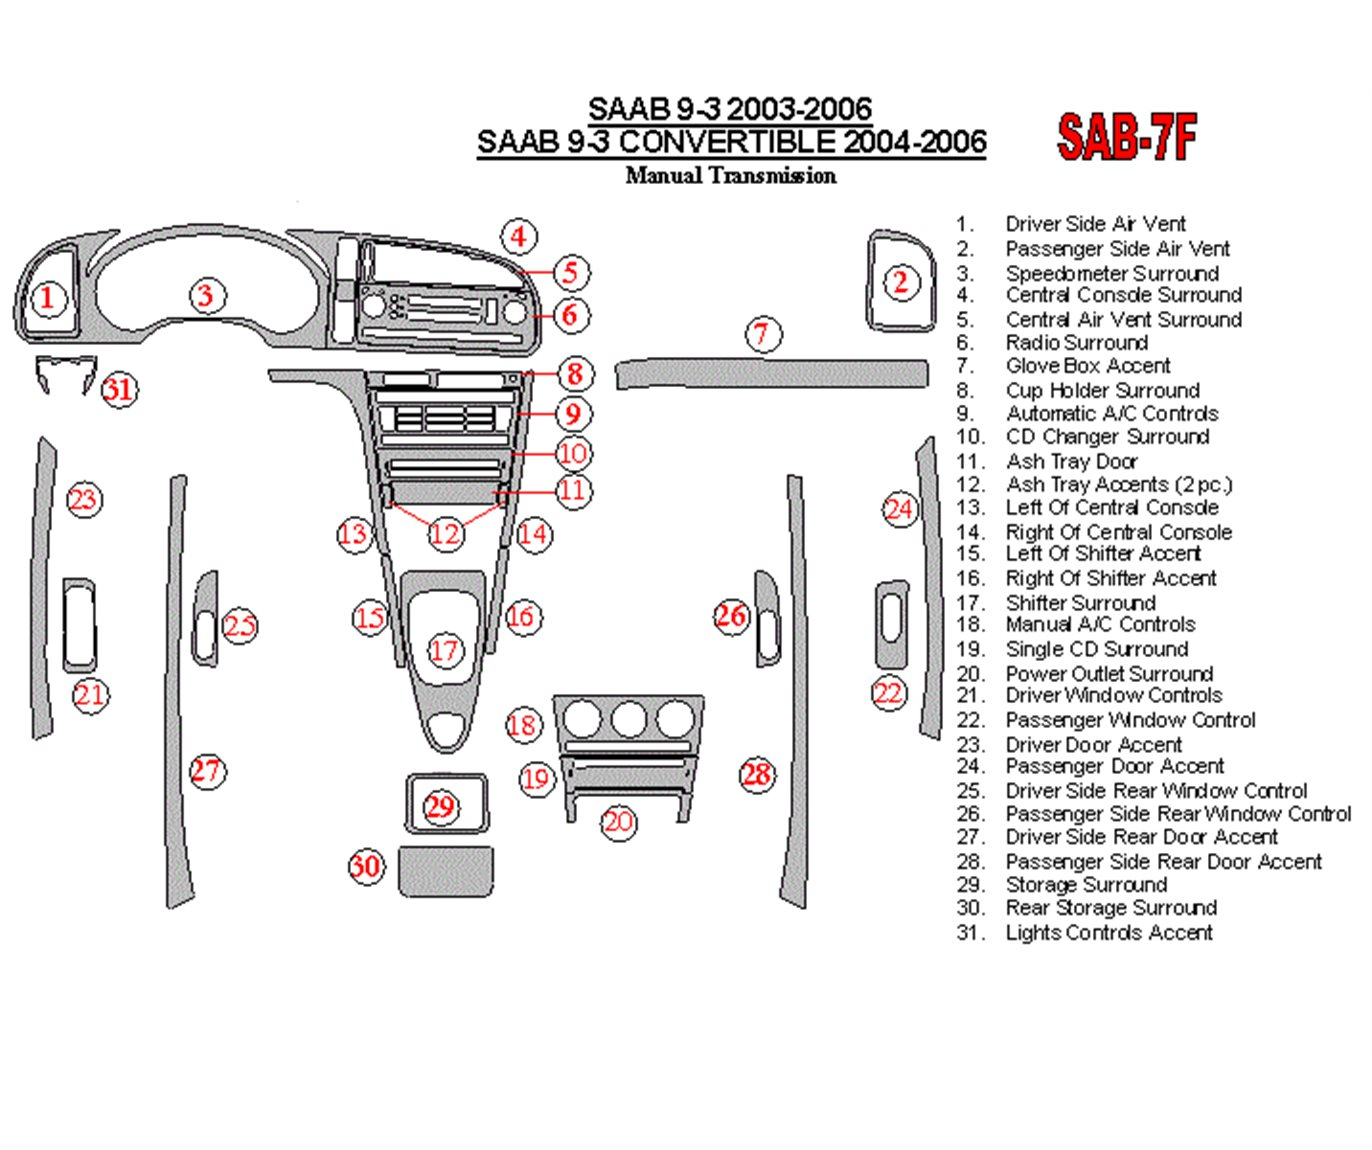 Saab 9-3 2003-2006 Manual Gear Box, Without Infotainment